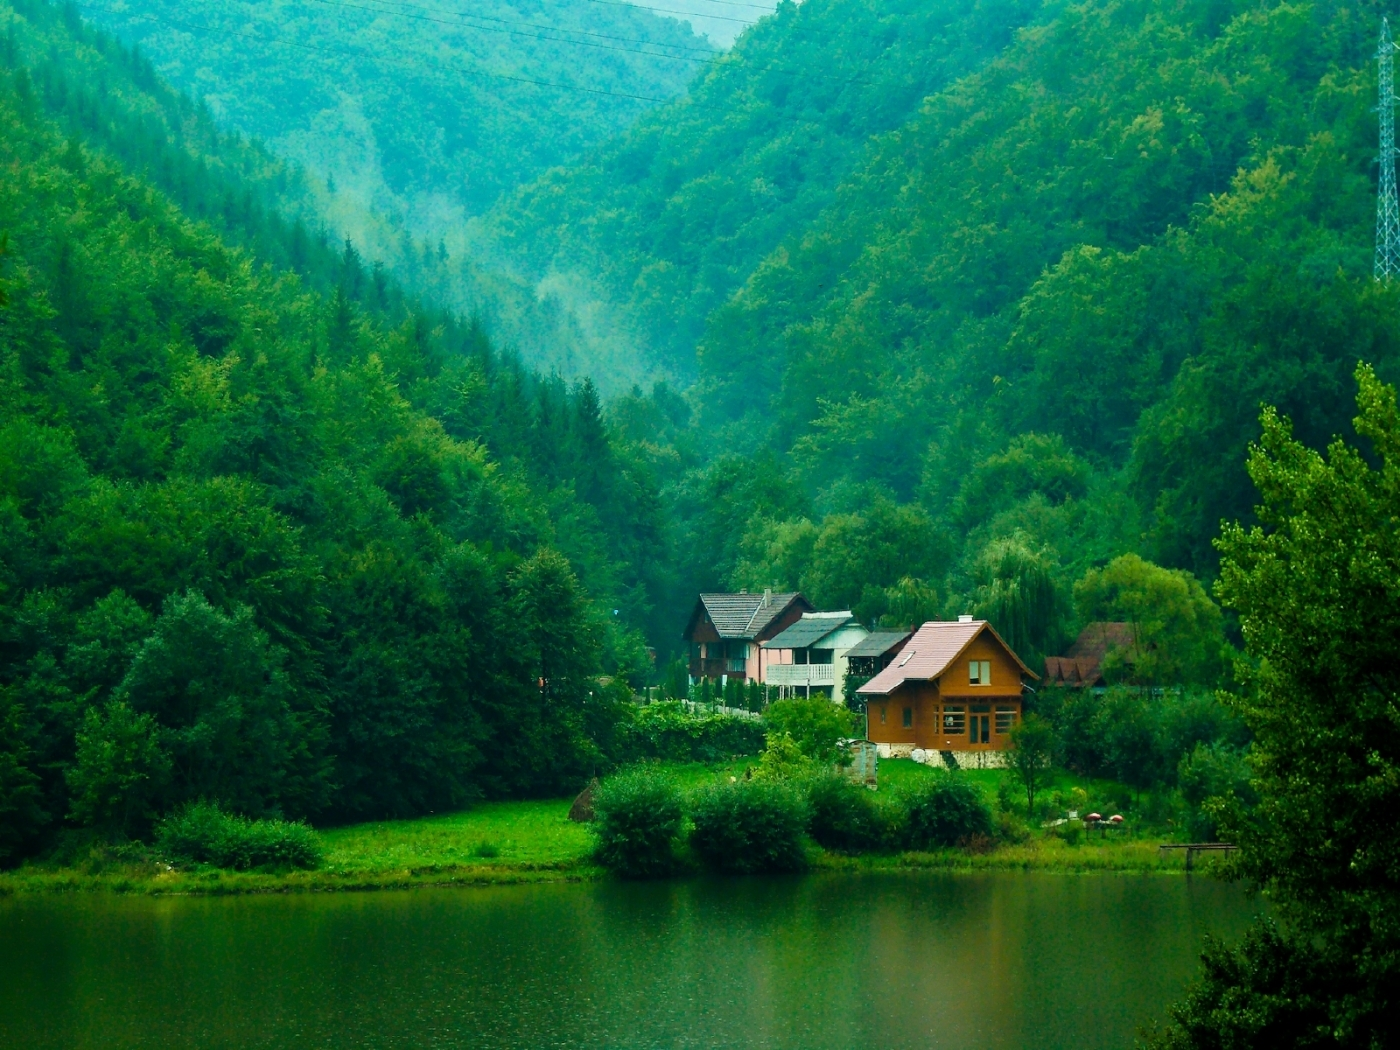 44450 download wallpaper Landscape, Nature, Houses screensavers and pictures for free